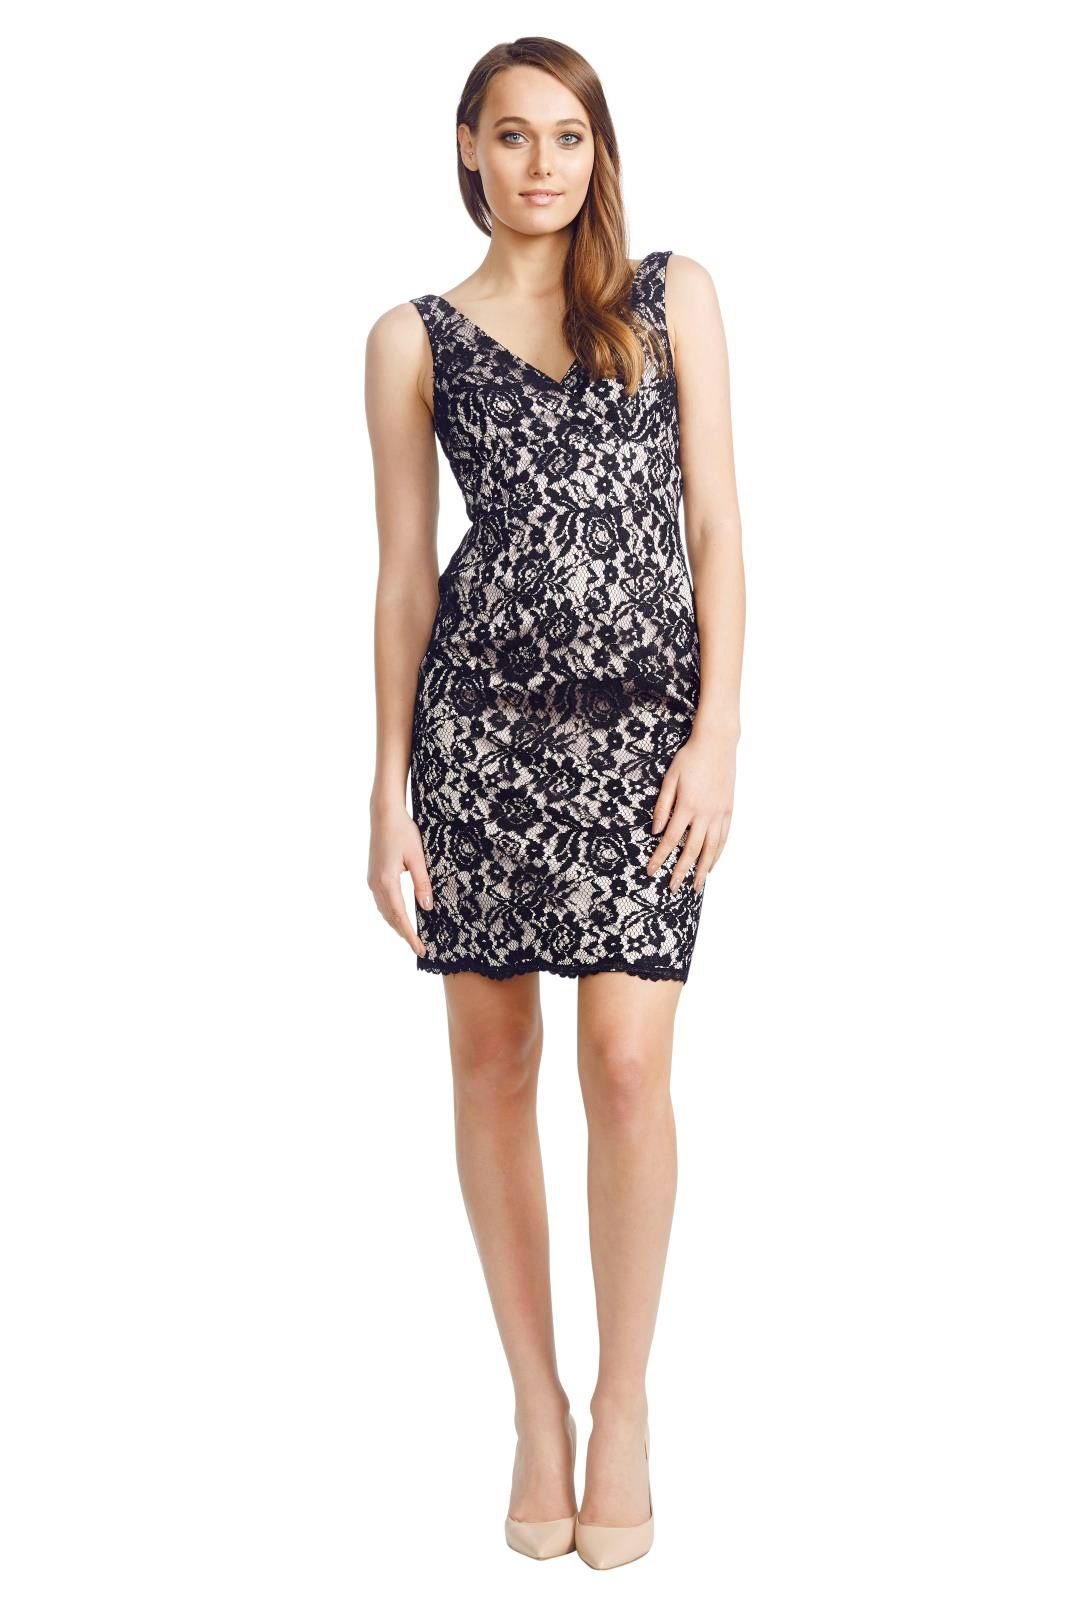 Matthew Eager - Lace Sheath Dress - Black - Front